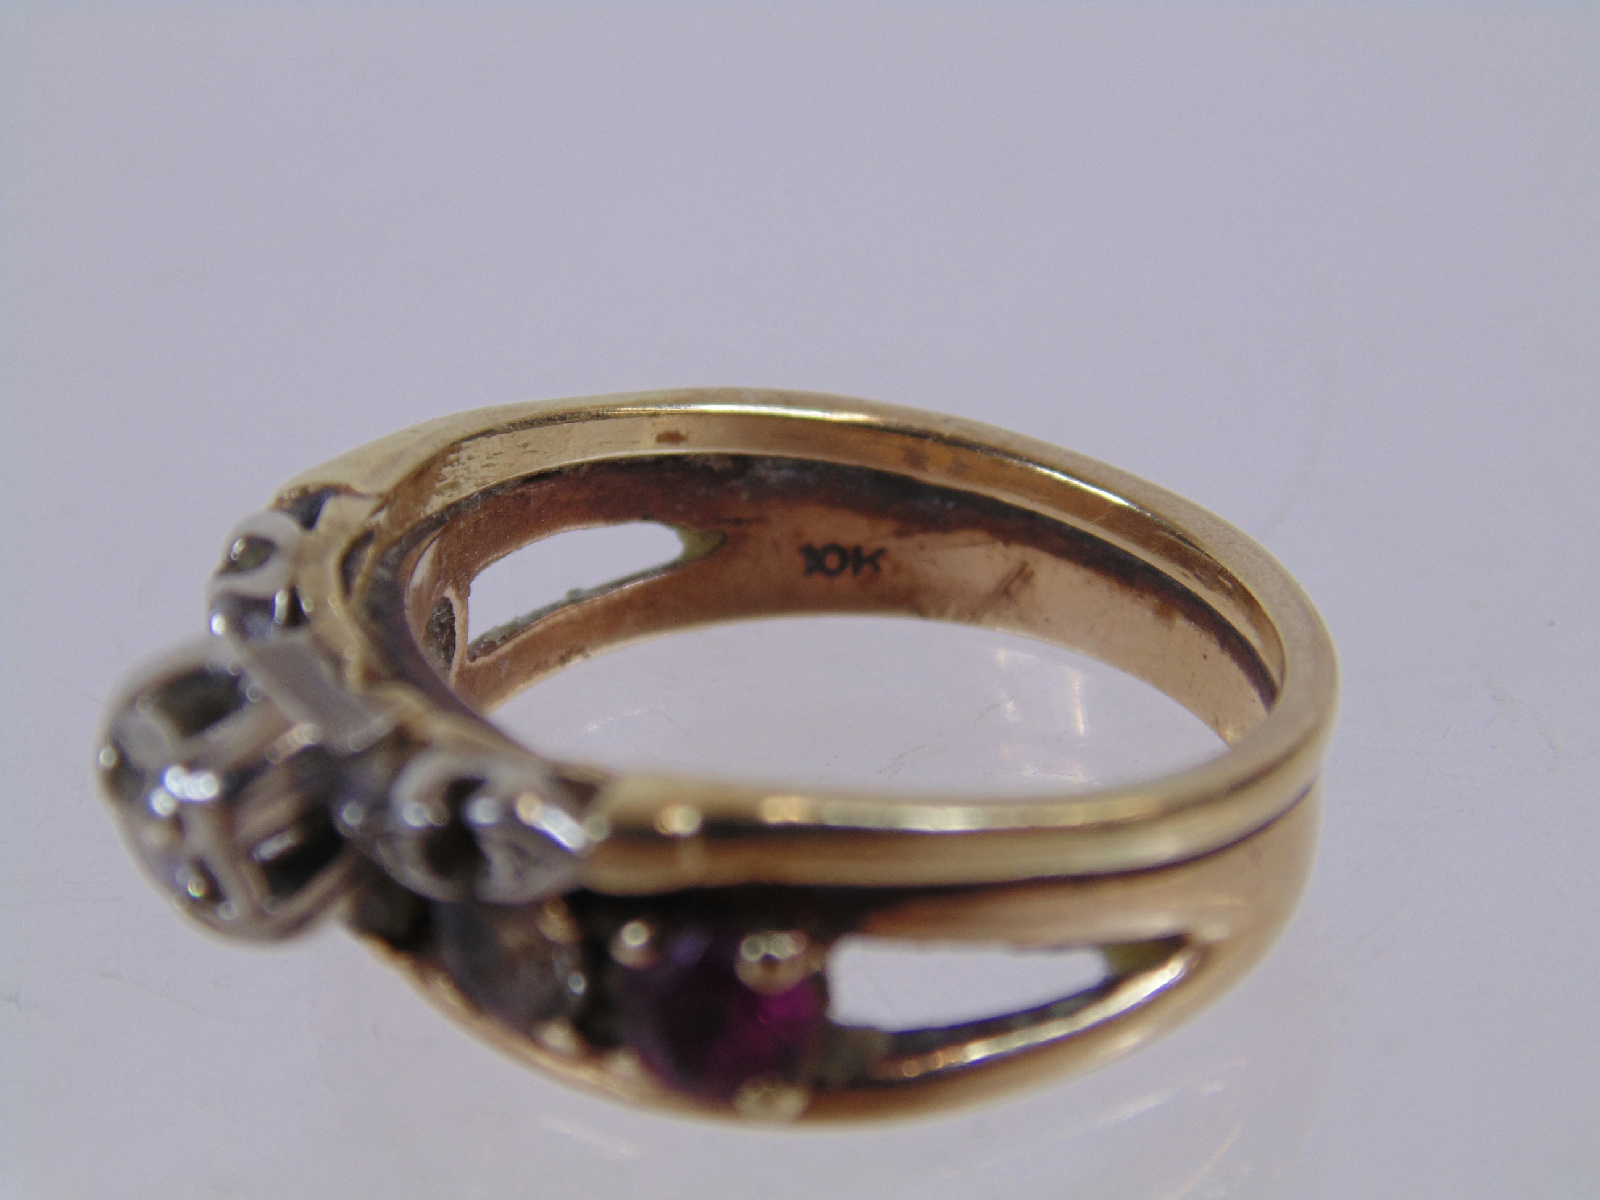 10k yellow white gold jewelry rings sautered together